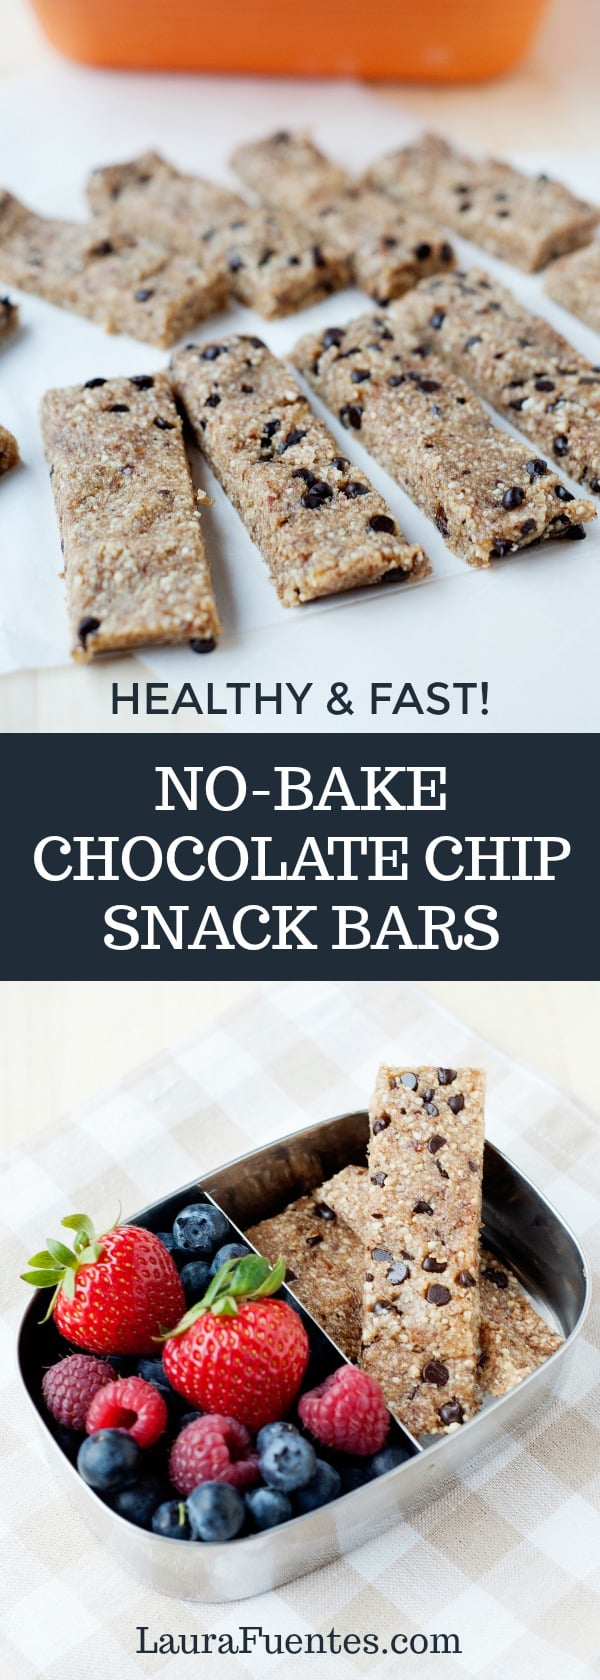 no bake chocolate chip snack bars that are made with healthy and real ingredients